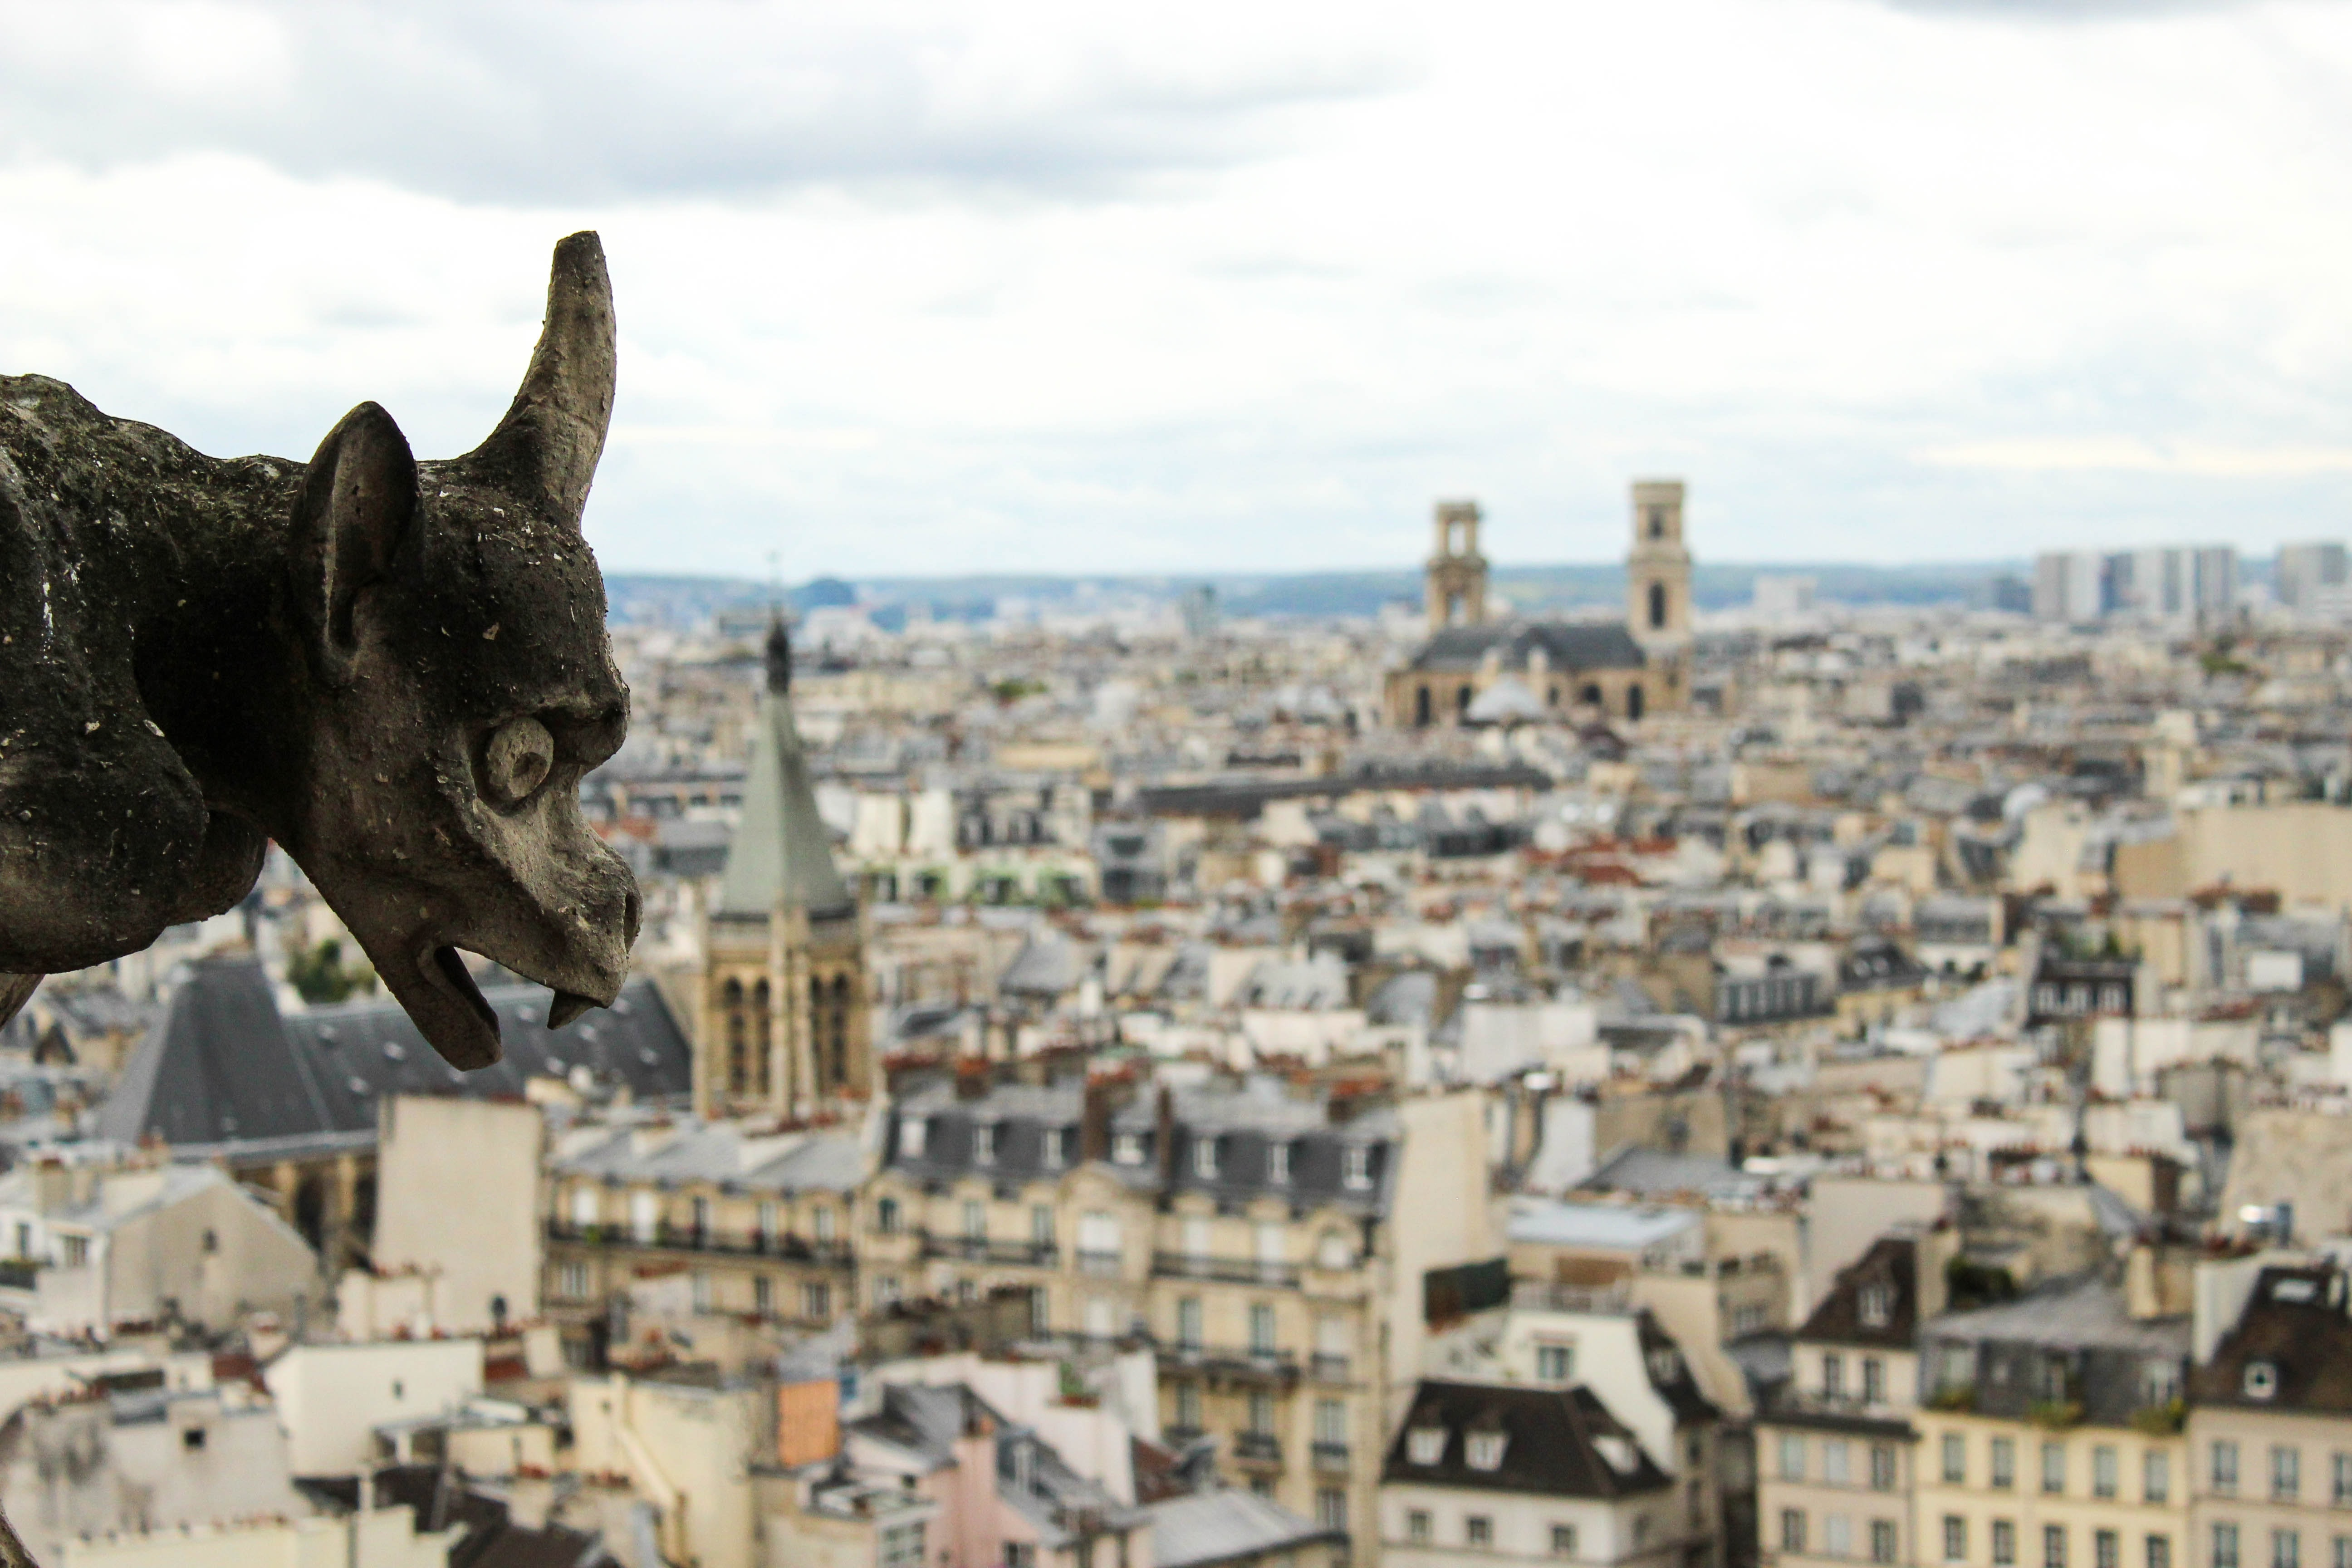 gargoyle with high angled view of town